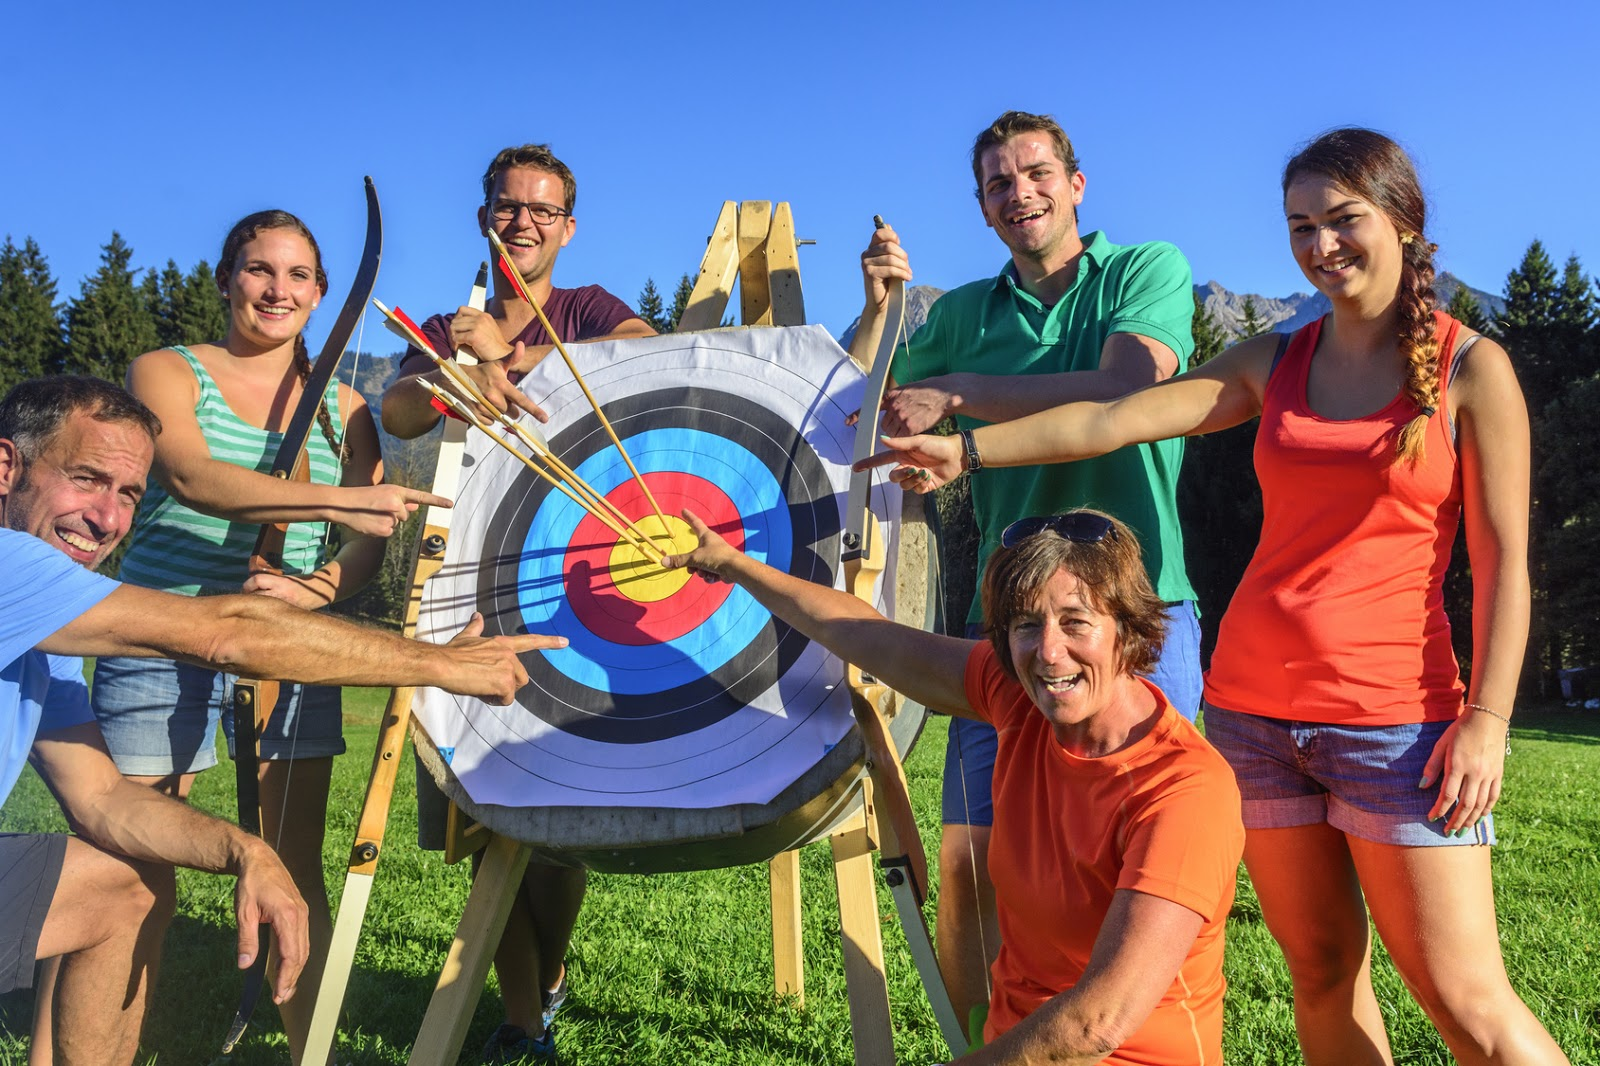 How to Shoot Better Groups With a Bow